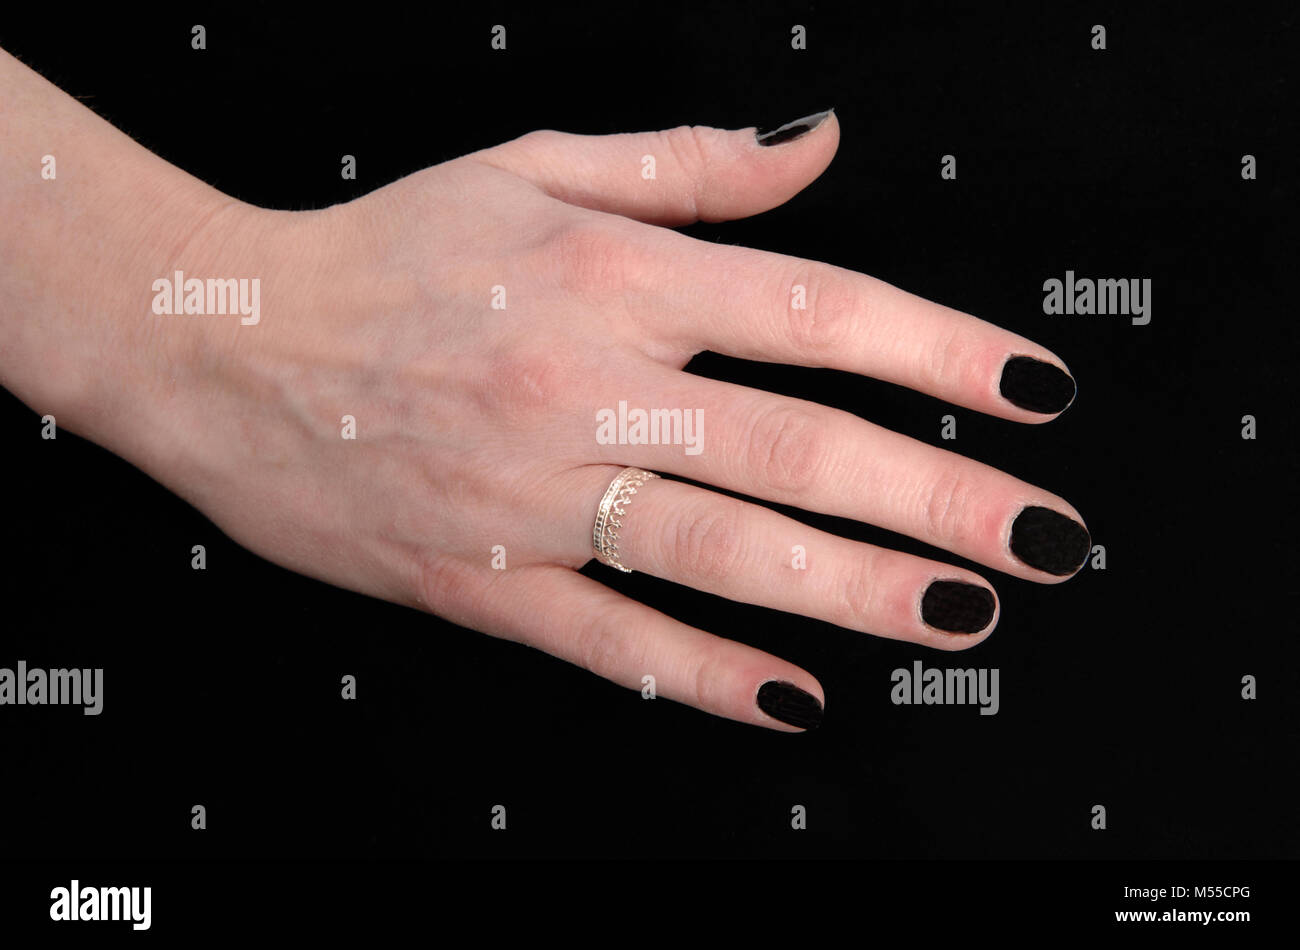 The hand of a woman on black background - Stock Image